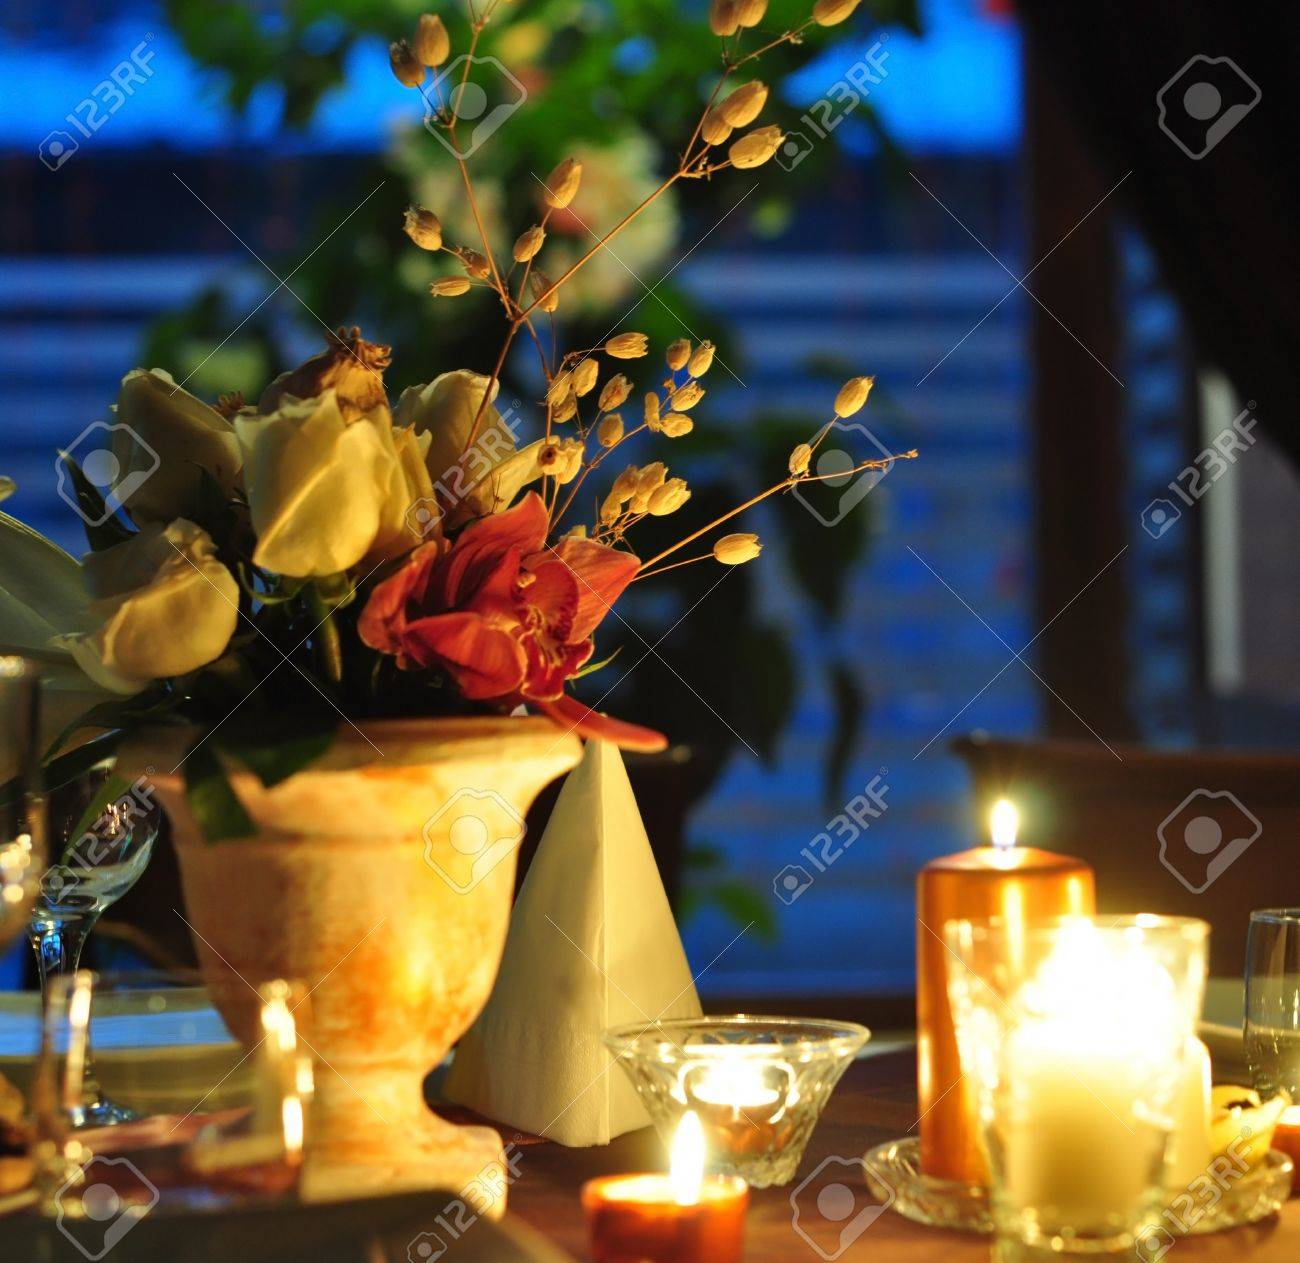 Romantic Dinner Decoration With Flowers And Candles Stock Photo Picture And Royalty Free Image Image 17306667